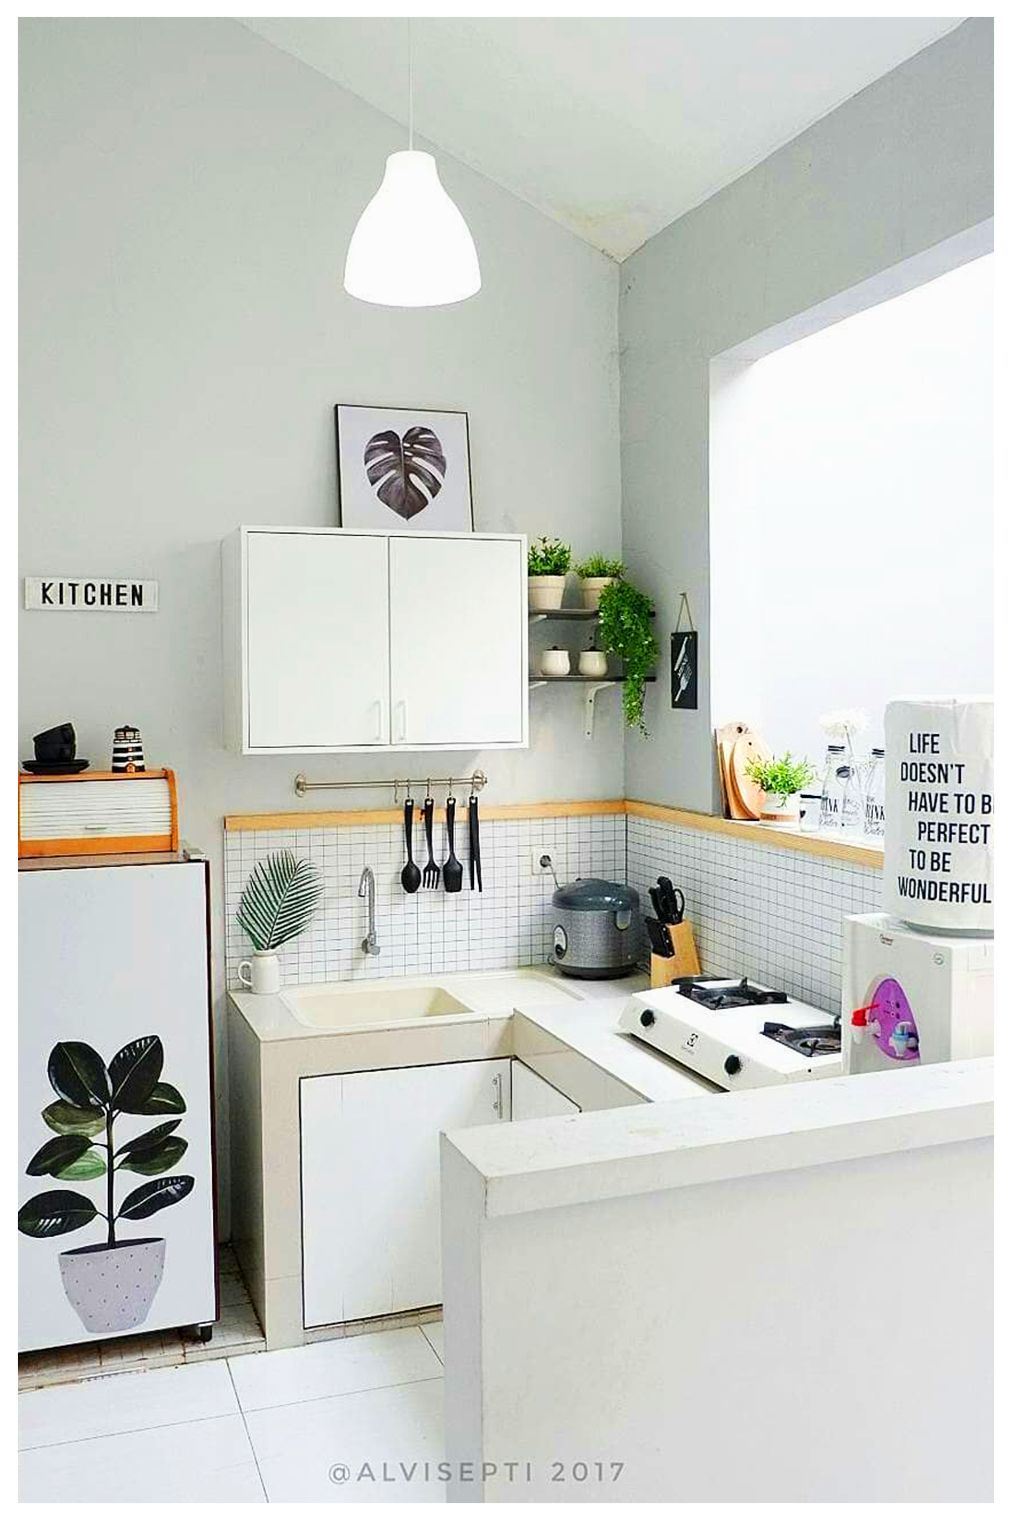 20 Brilliant Kitchen Remodel Ideas Before And After For 2020 Remodel Tips Tool Kitchen Design Small Home Decor Kitchen Small Kitchen Decor